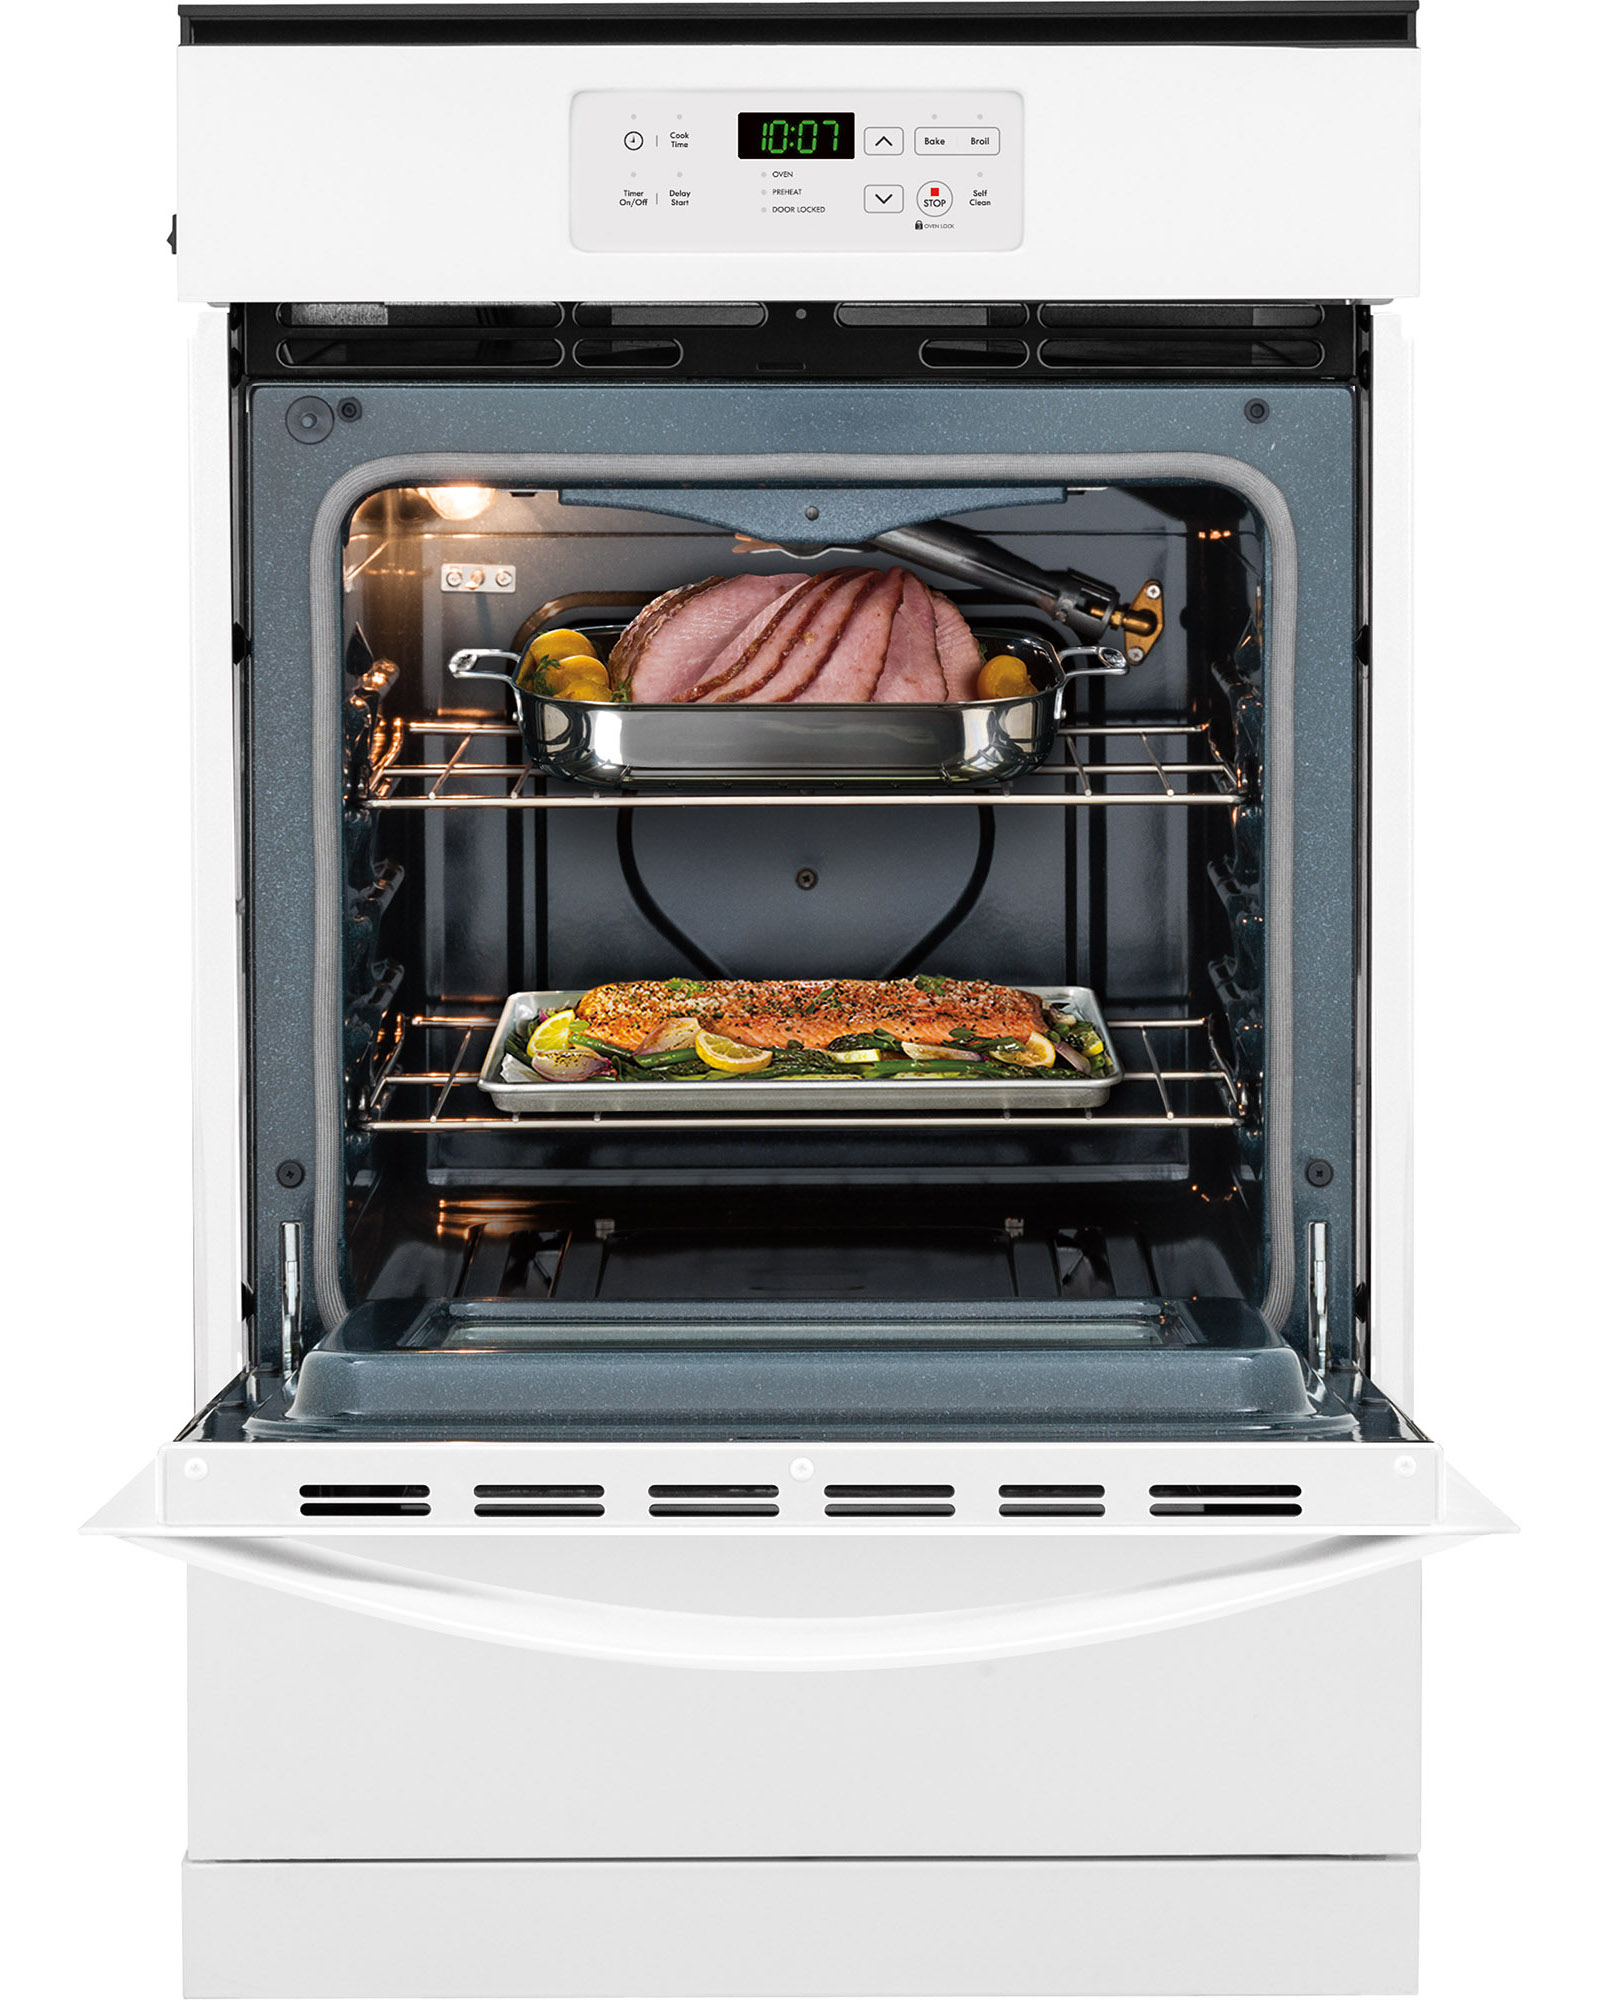 """Kenmore 40302 24"""" Gas Wall Oven - White"""